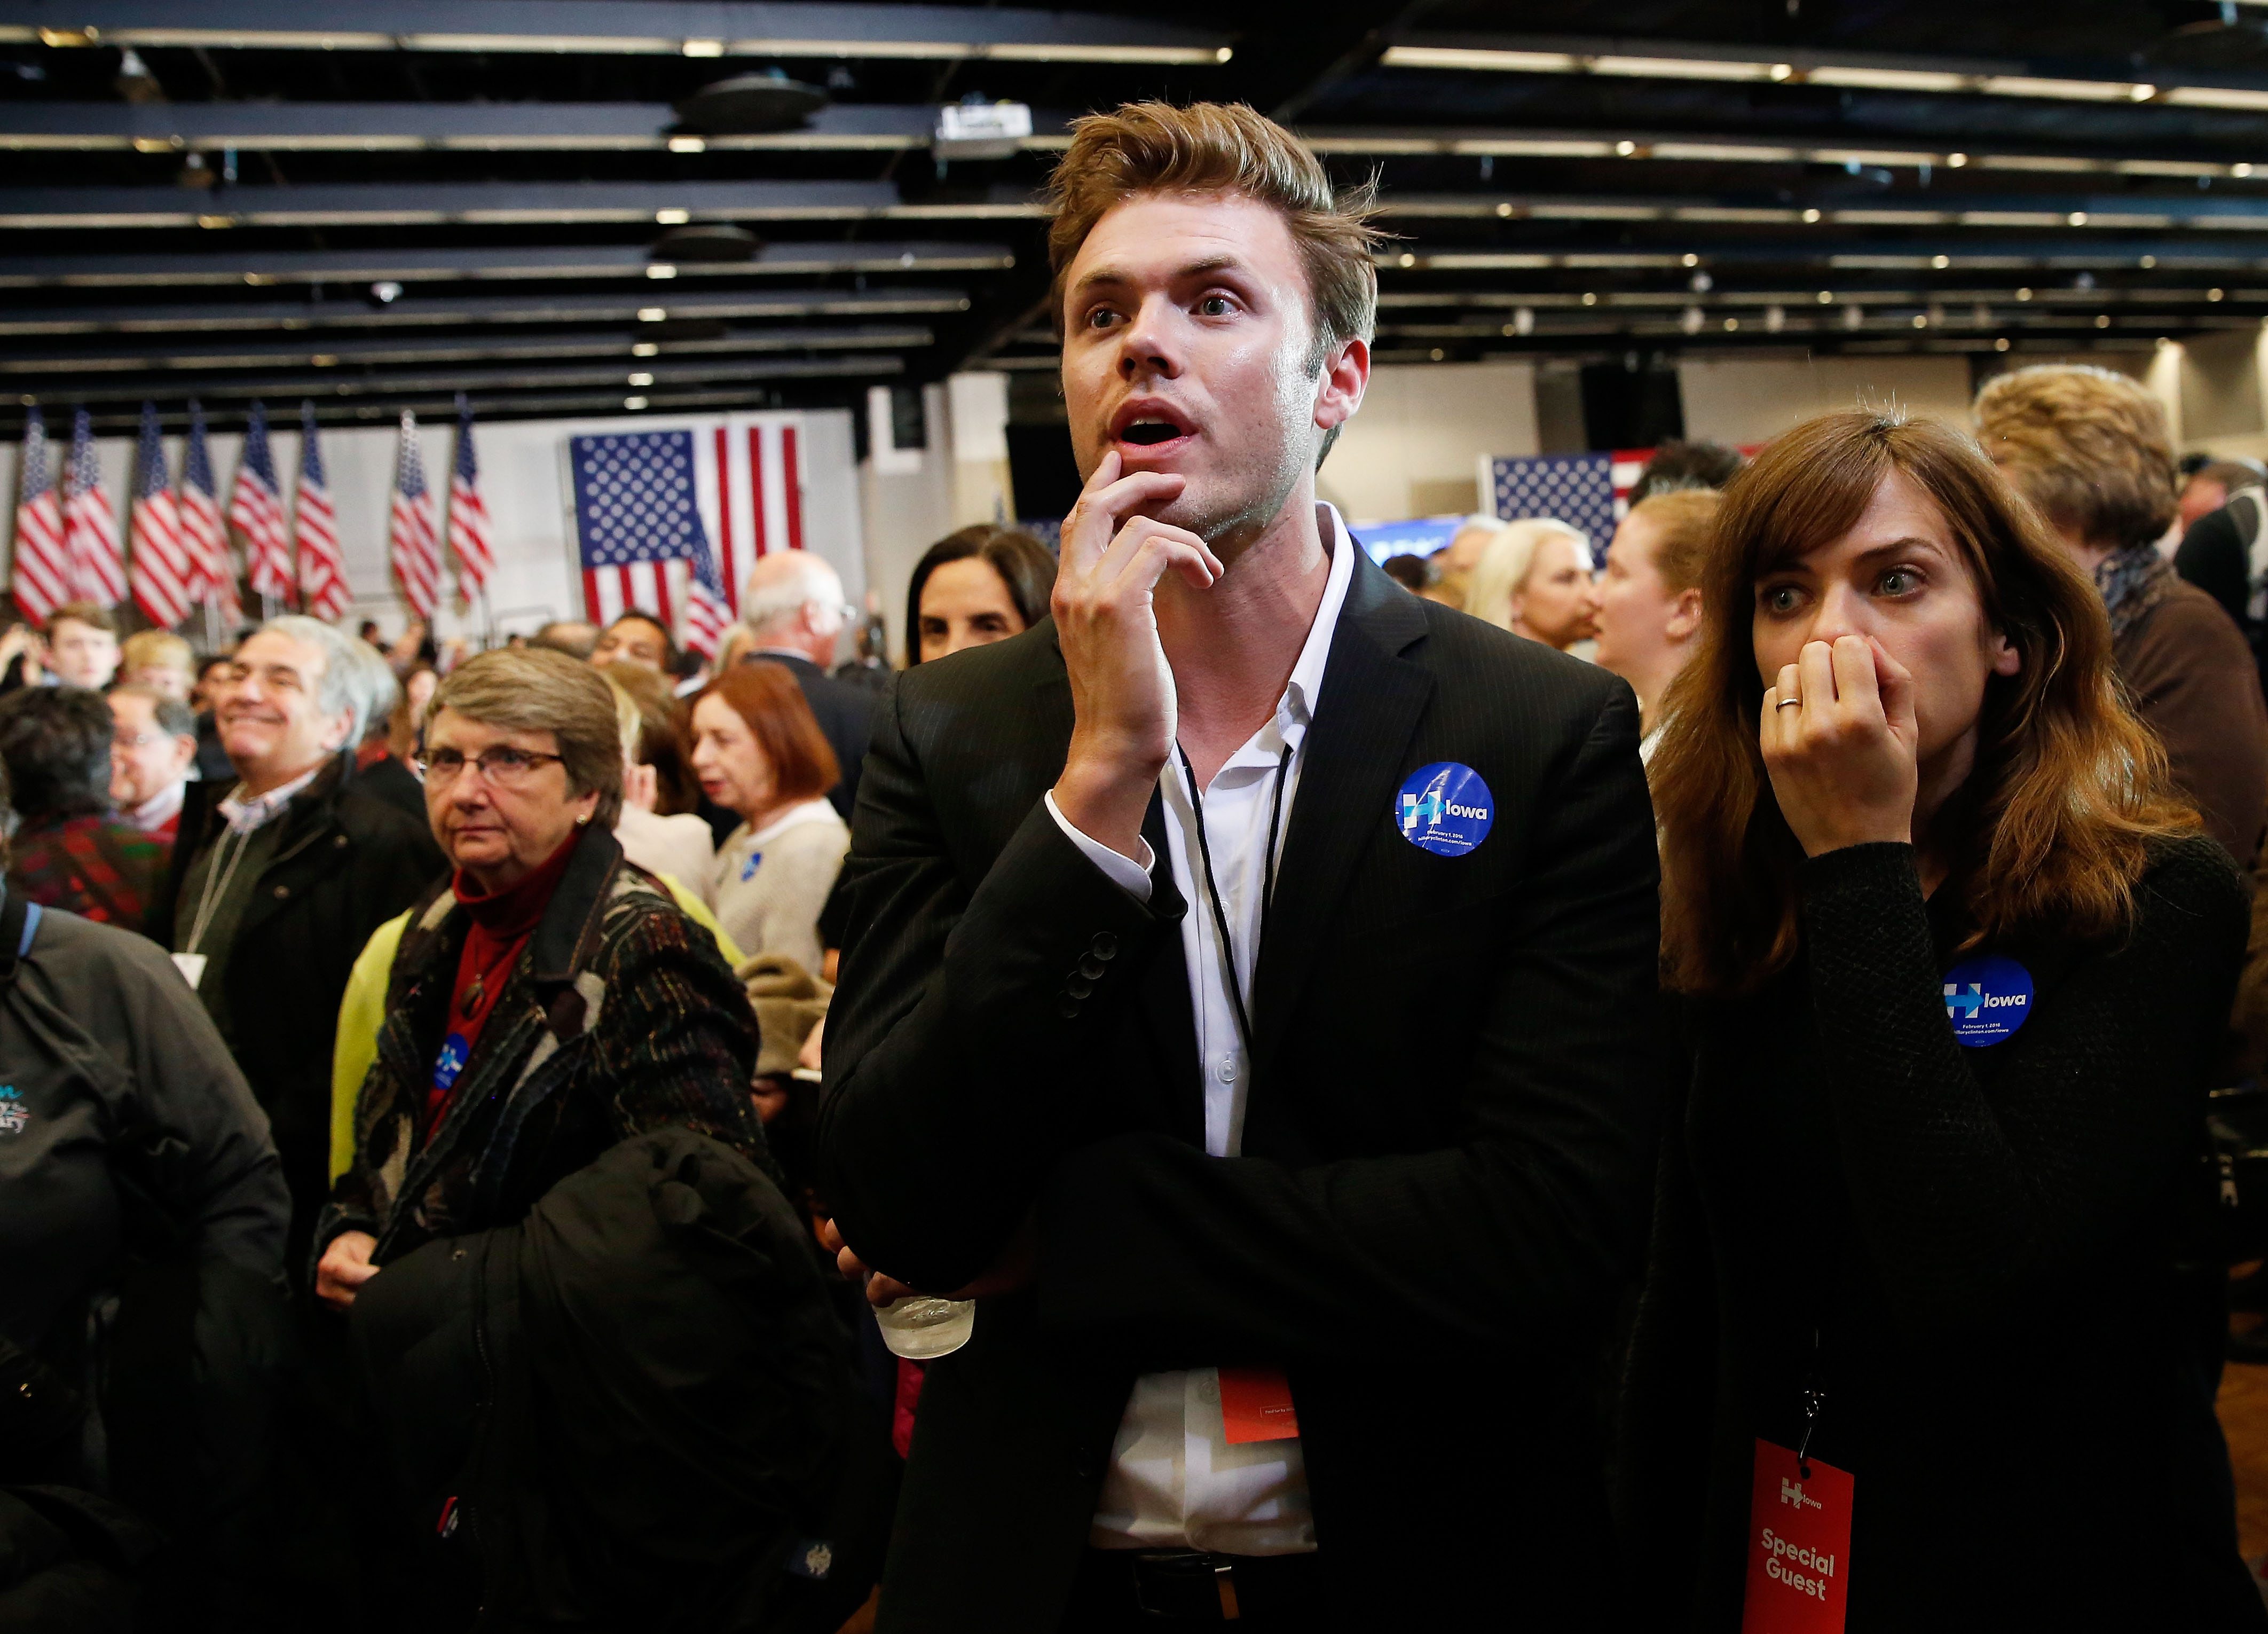 HRC volunteer and actor Blake Cooper Griffin (L) from Los Angeles, California and other supporters watch as results are displayed on a television during the caucus night event of Democratic presidential candidate former Secretary of State Hillary Clinton in the Olmsted Center at Drake University on February 1, 2016 in Des Moines, Iowa. Clinton, Sen. Bernie Sanders (I-VT) and Martin O'Malley are competing in the Iowa Democratic caucus.